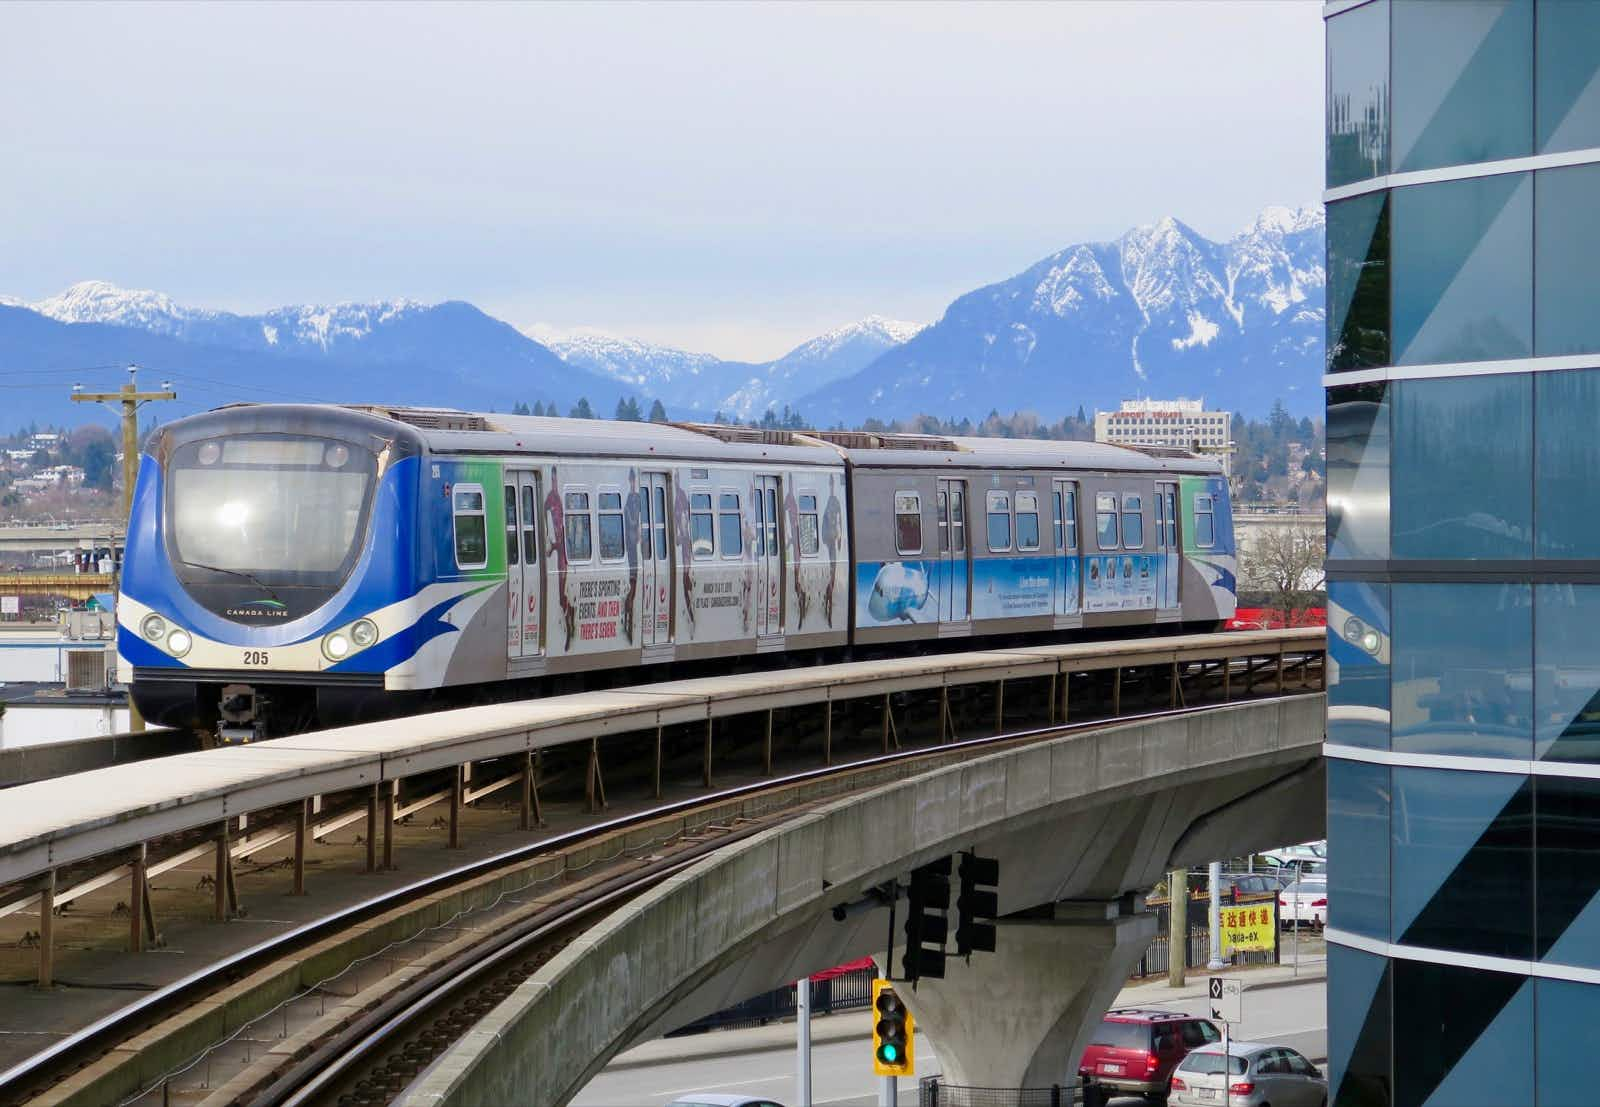 A Canada Line train of the SkyTrain system pulls into Aberdeen Station in Vancouver © John Lee / Lonely Planet